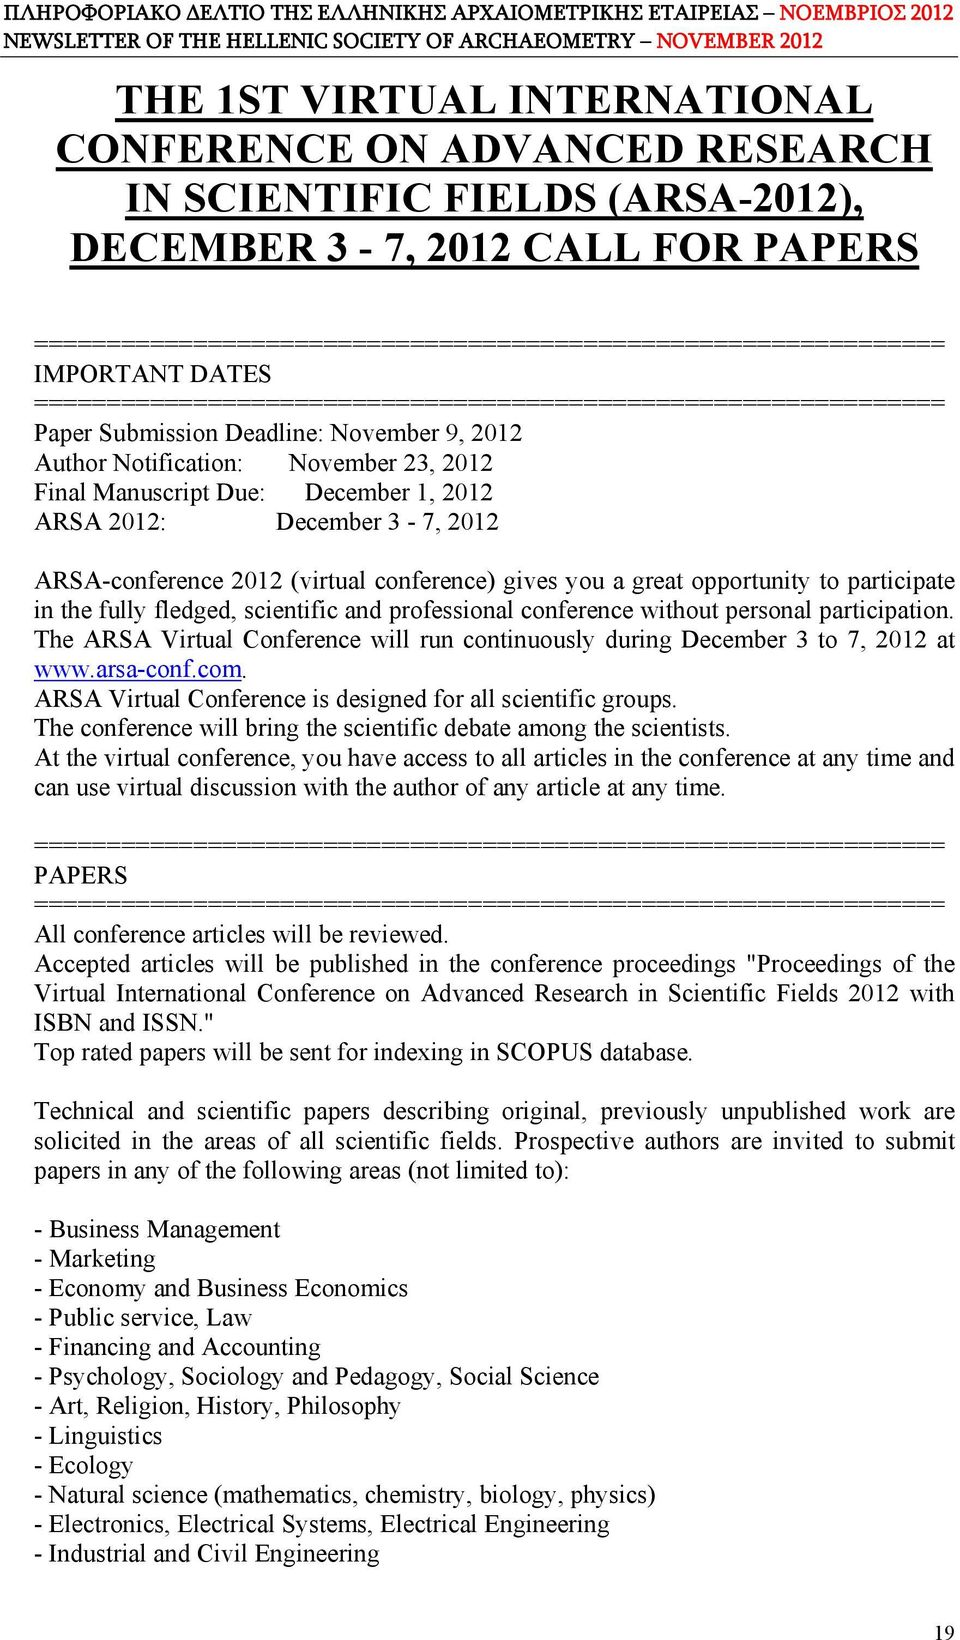 2012 ARSA 2012: December 3-7, 2012 ARSA-conference 2012 (virtual conference) gives you a great opportunity to participate in the fully fledged, scientific and professional conference without personal